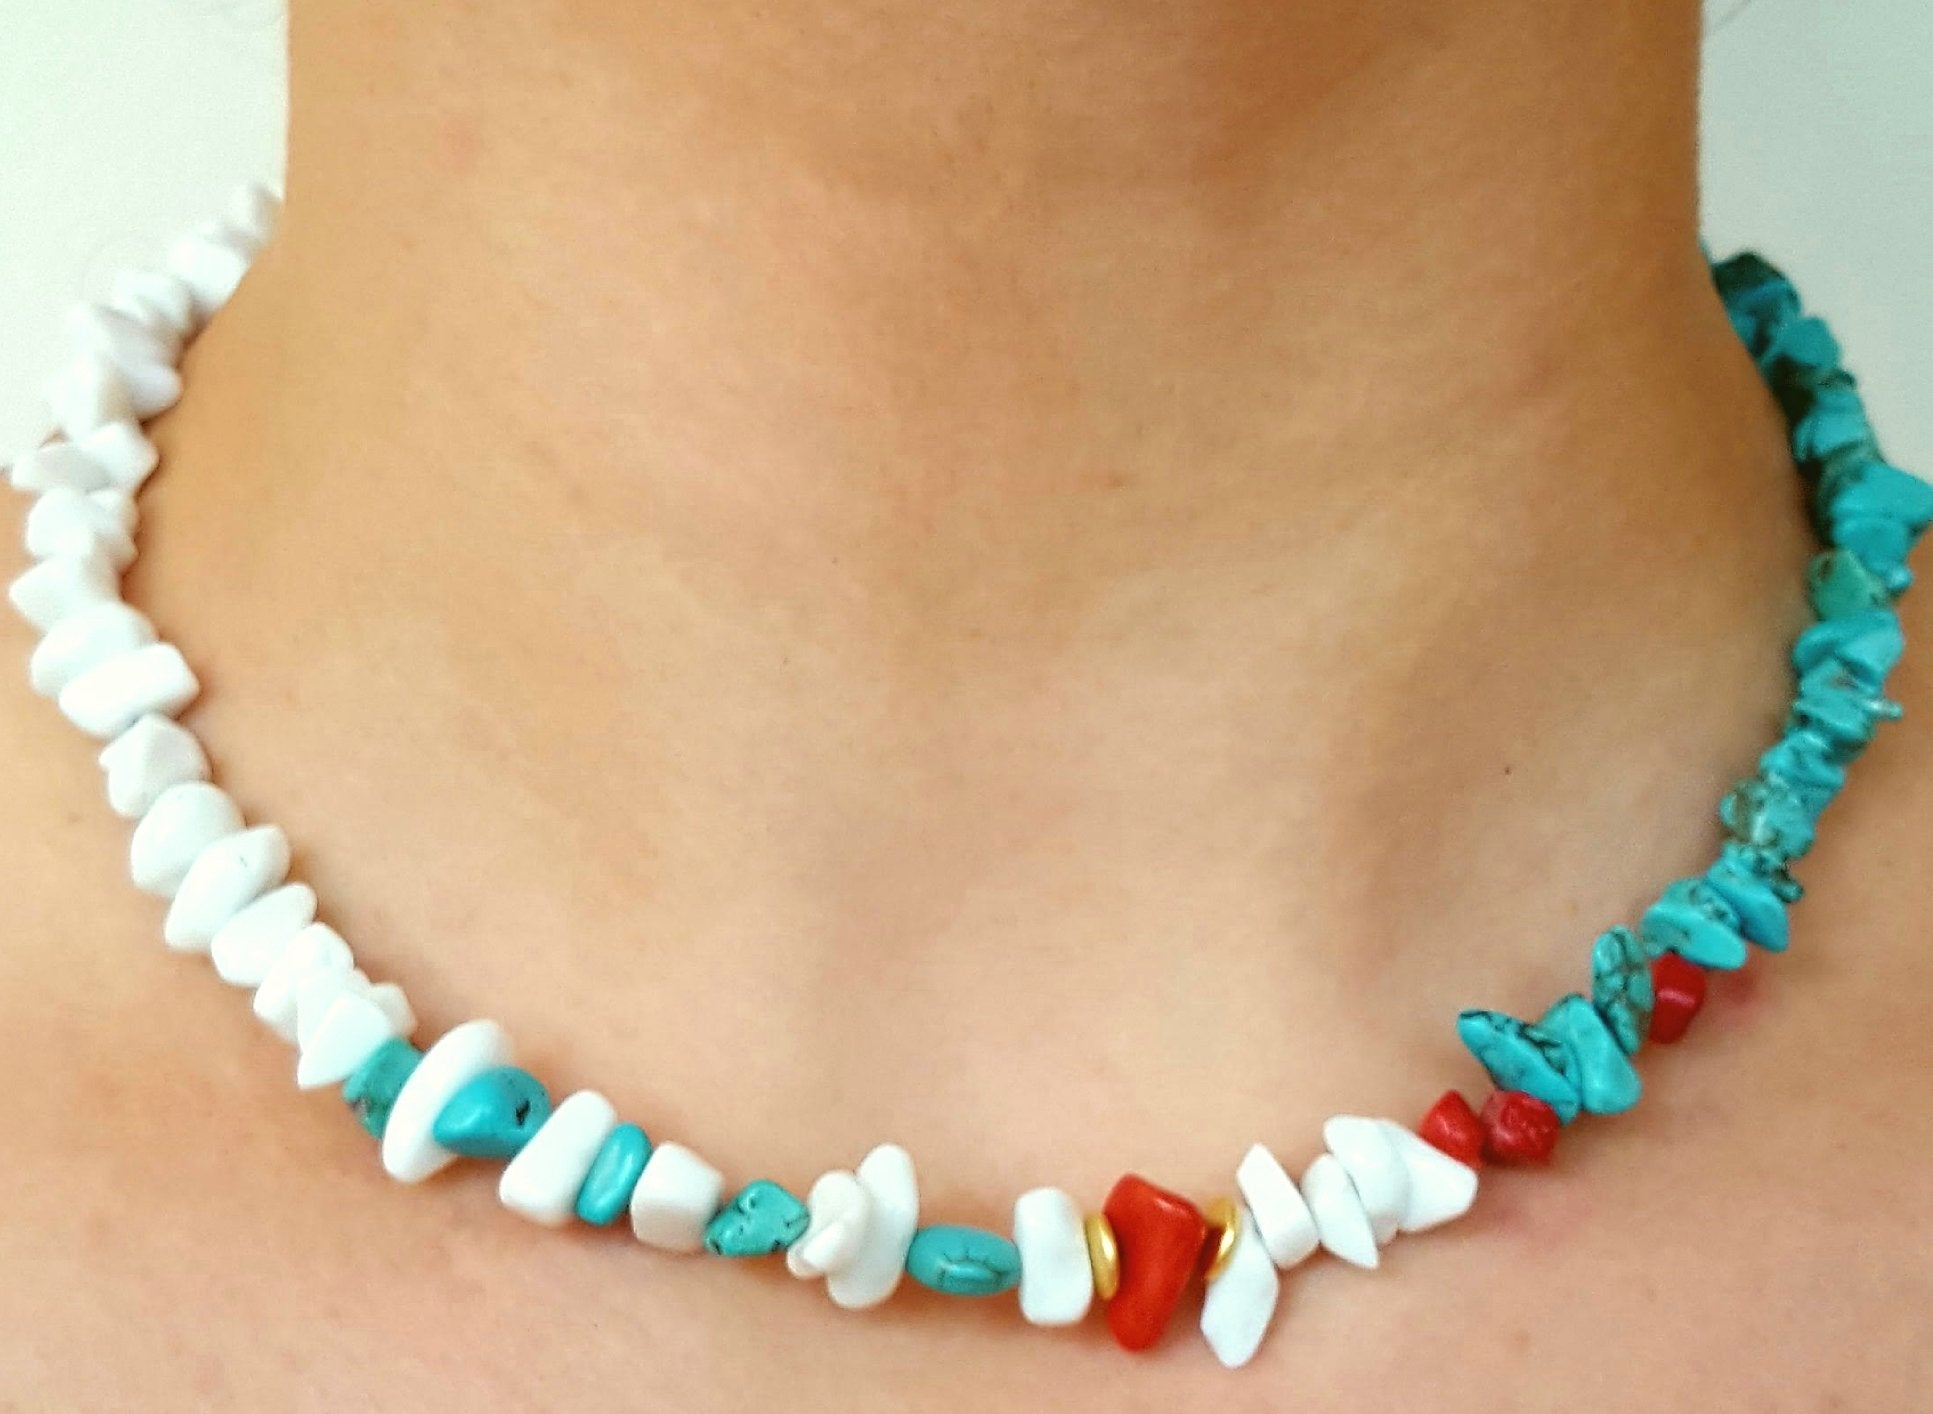 Reminiscences of Summer - Short necklace